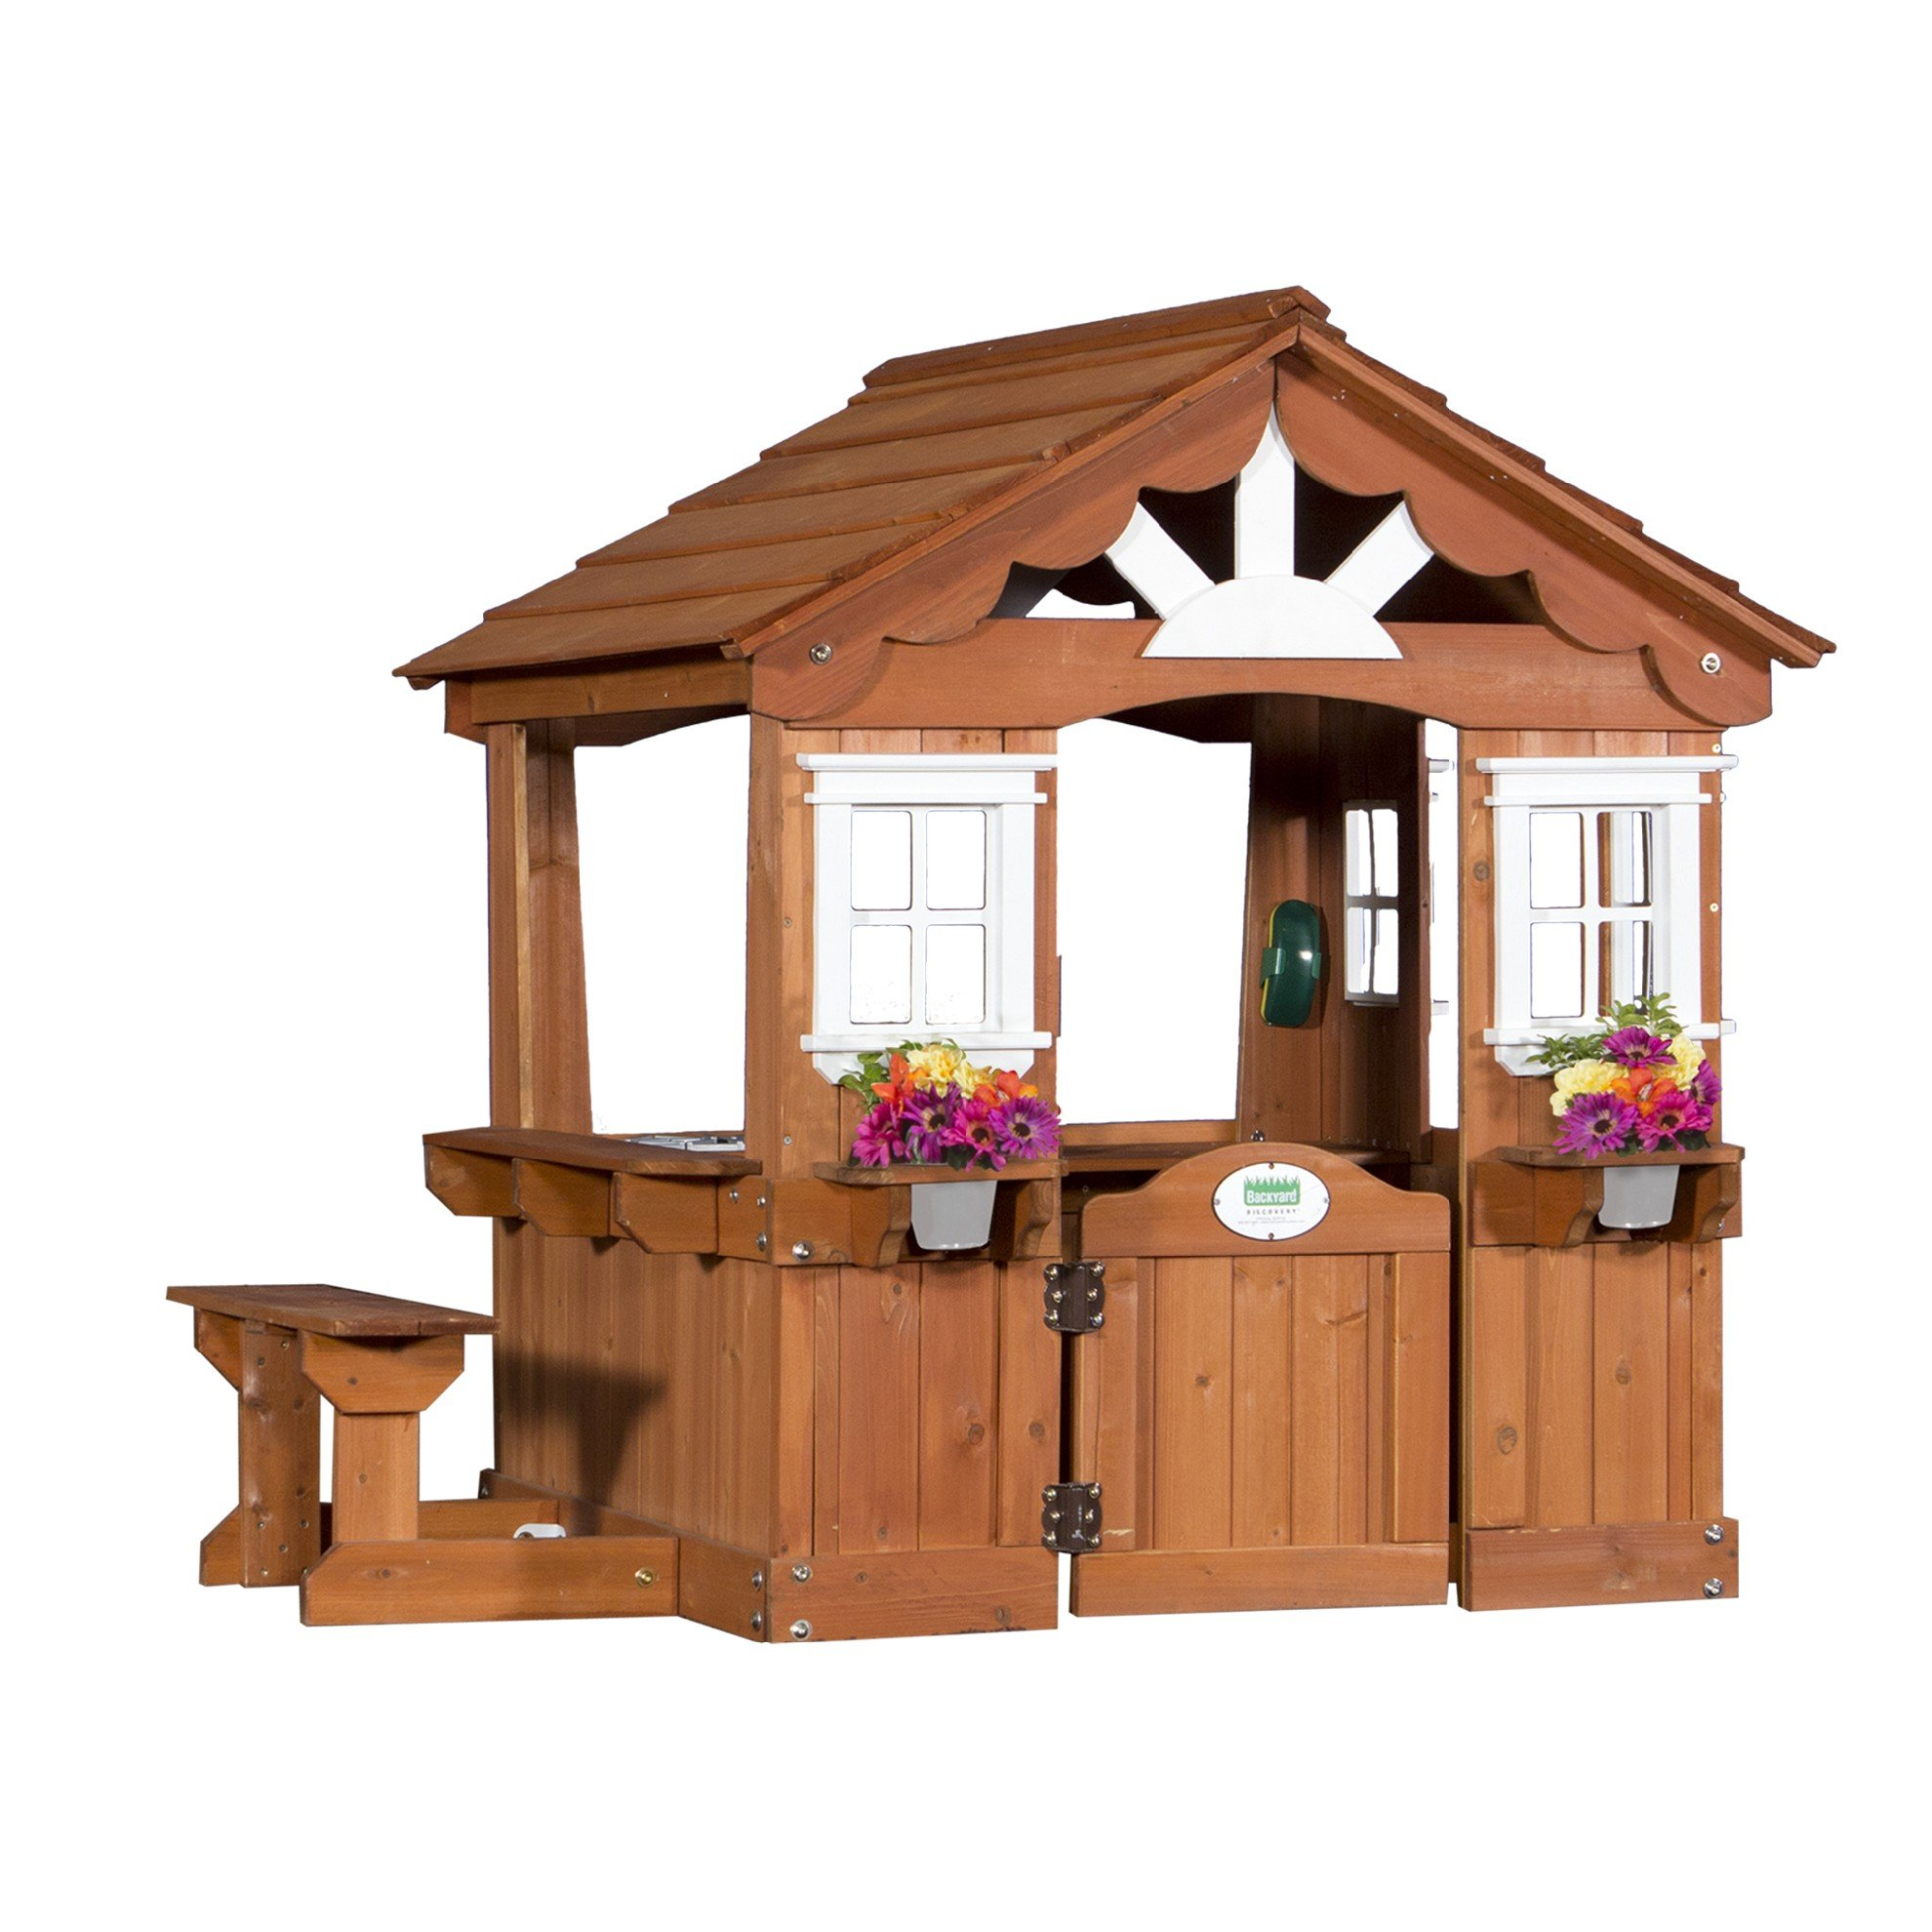 Backyard Discovery Scenic All Cedar Outdoor Wooden Playhouse by Backyard Discovery (Image #5)